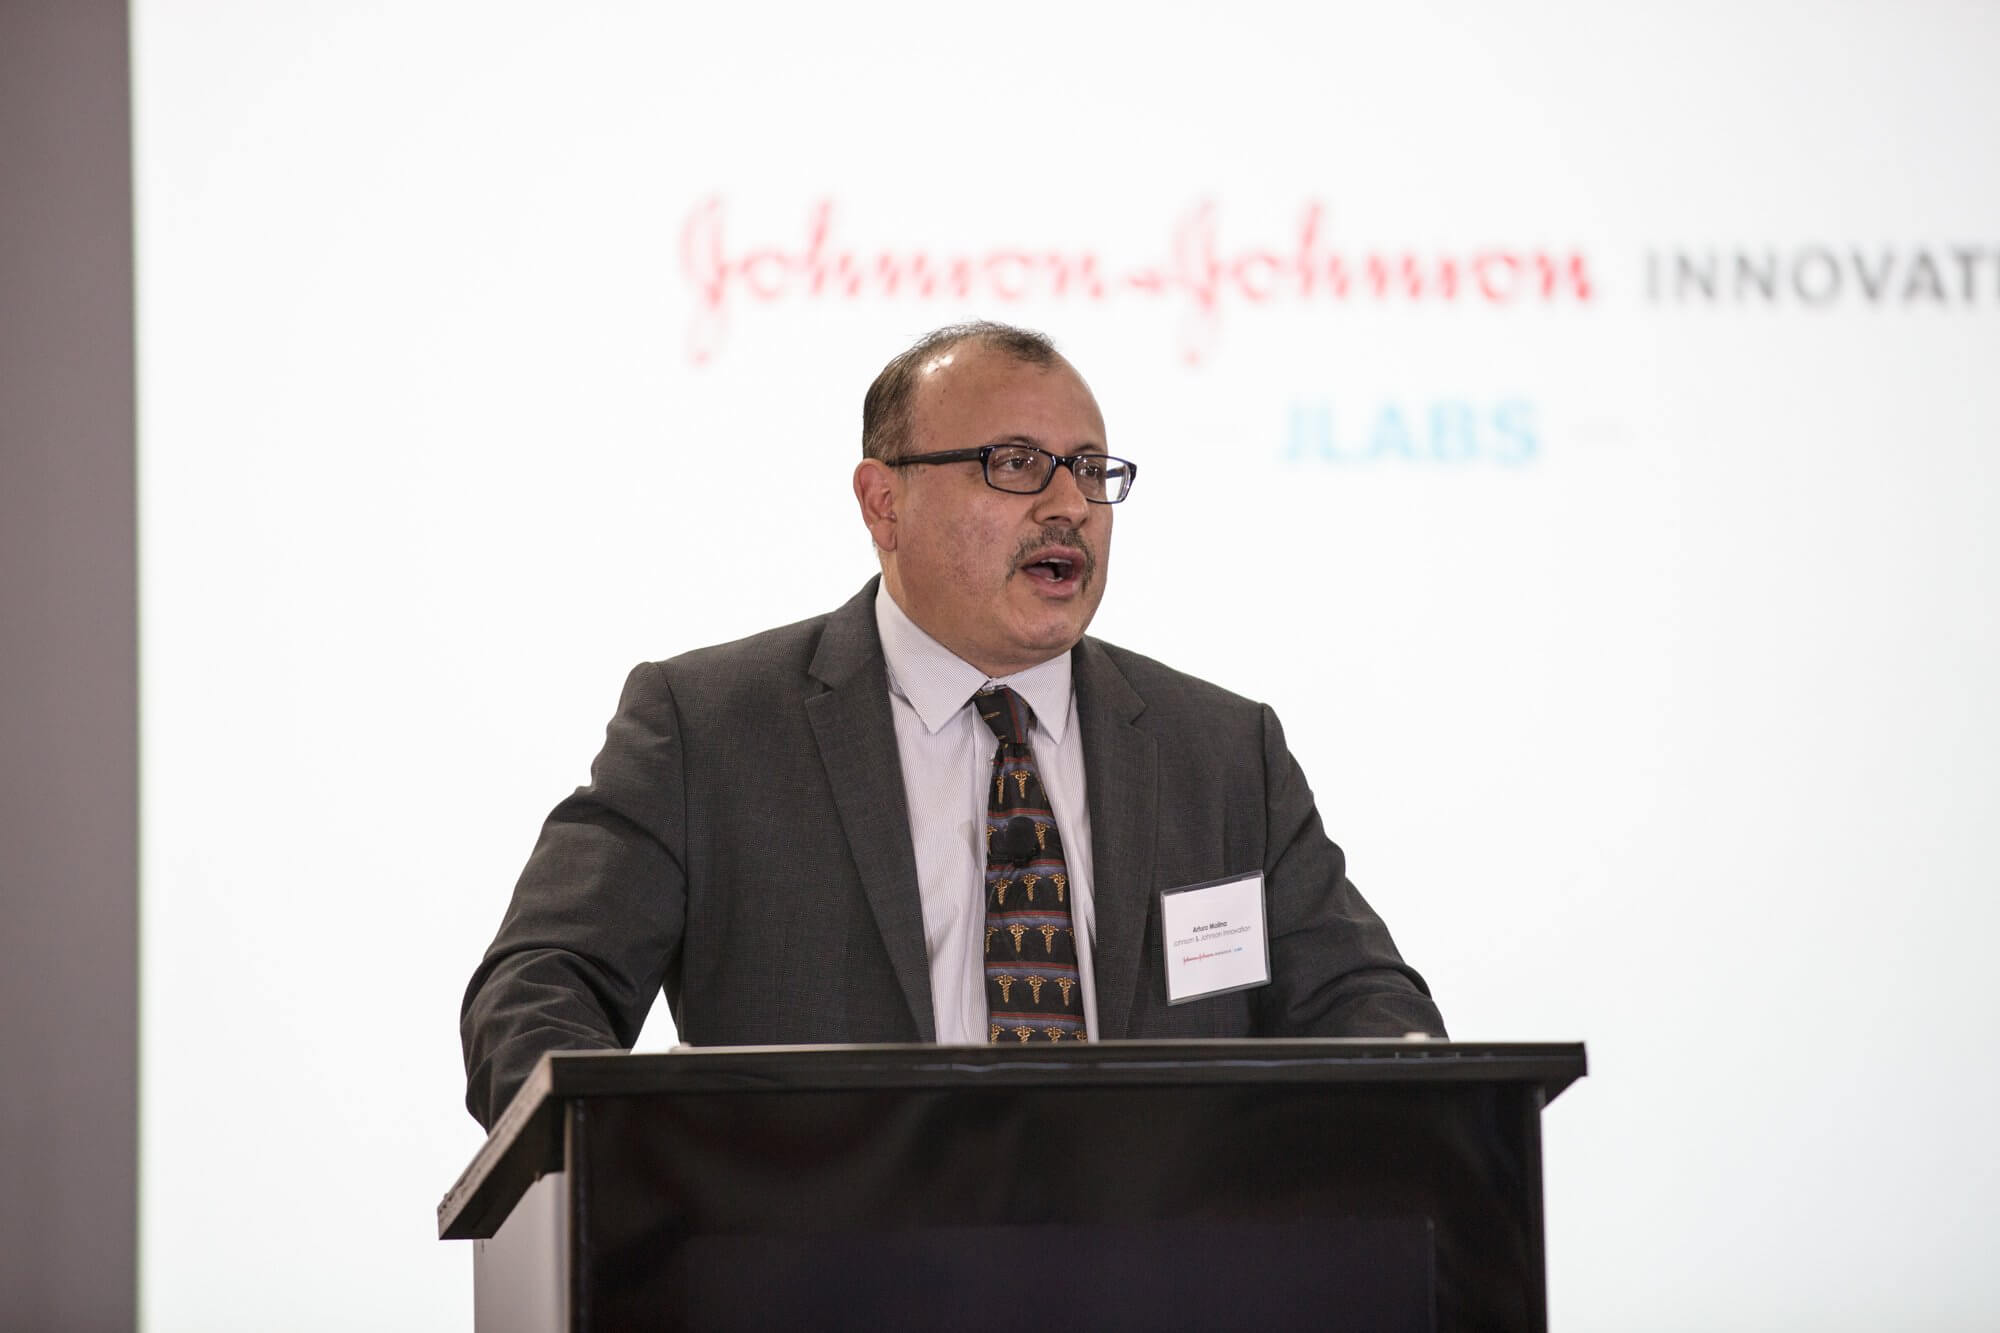 Arturo Molina, M.D., vice president of oncology scientific innovation at Johnson & Johnson.